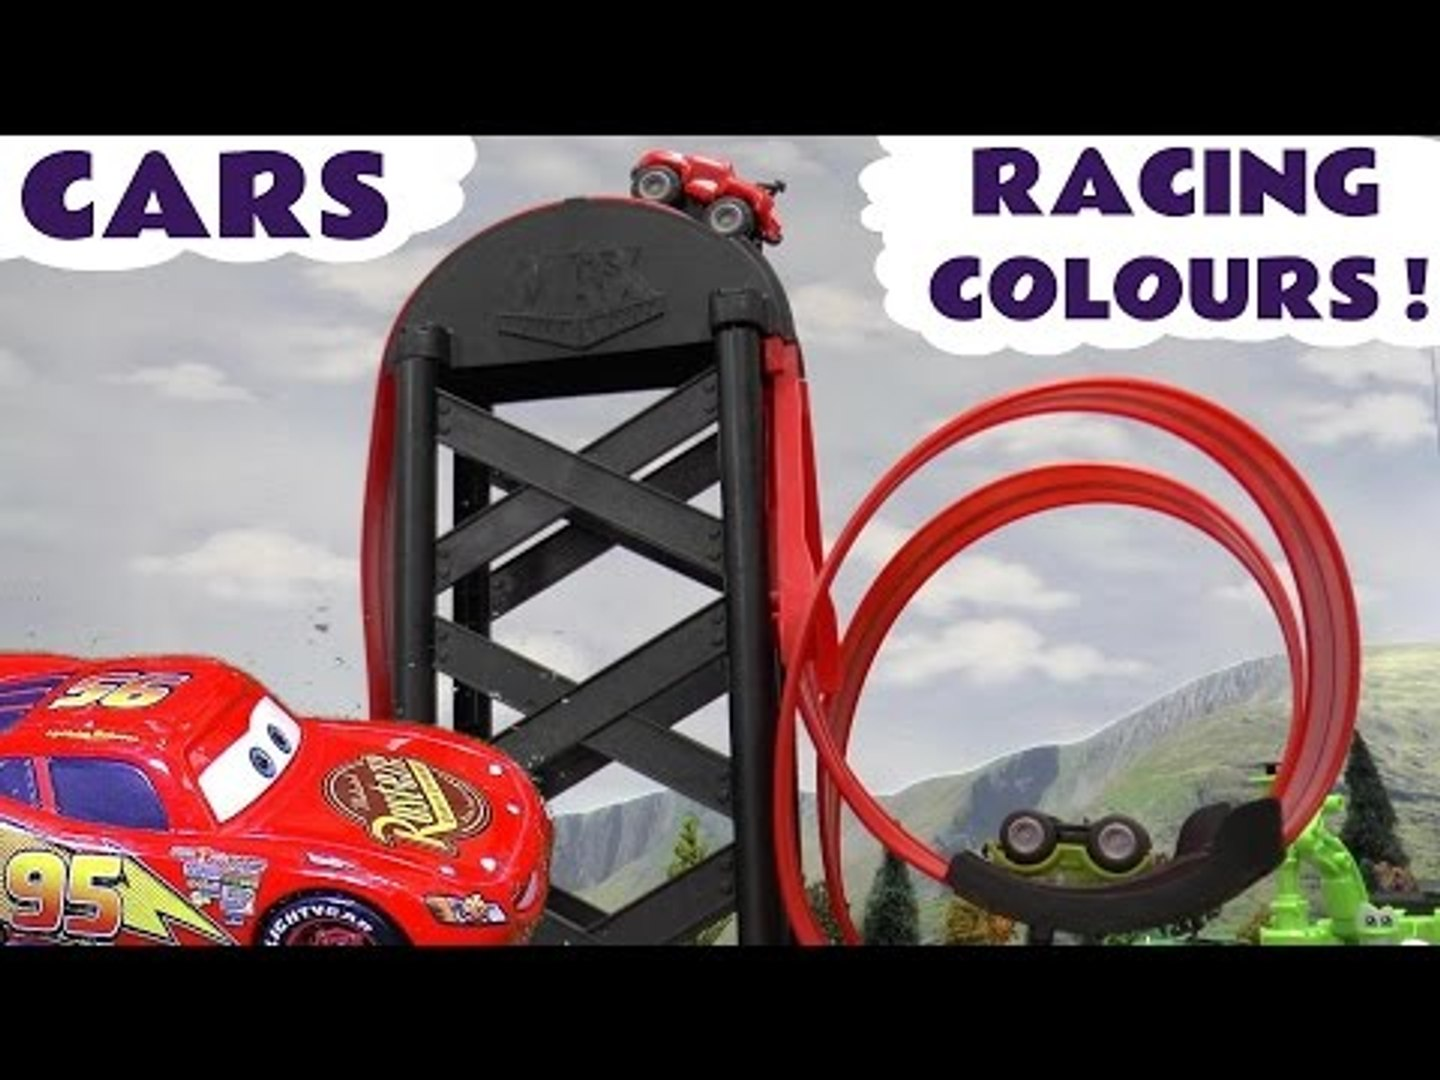 RACING COLOURS! --- Join Disney Cars to learn colors or watch them race each other while characters